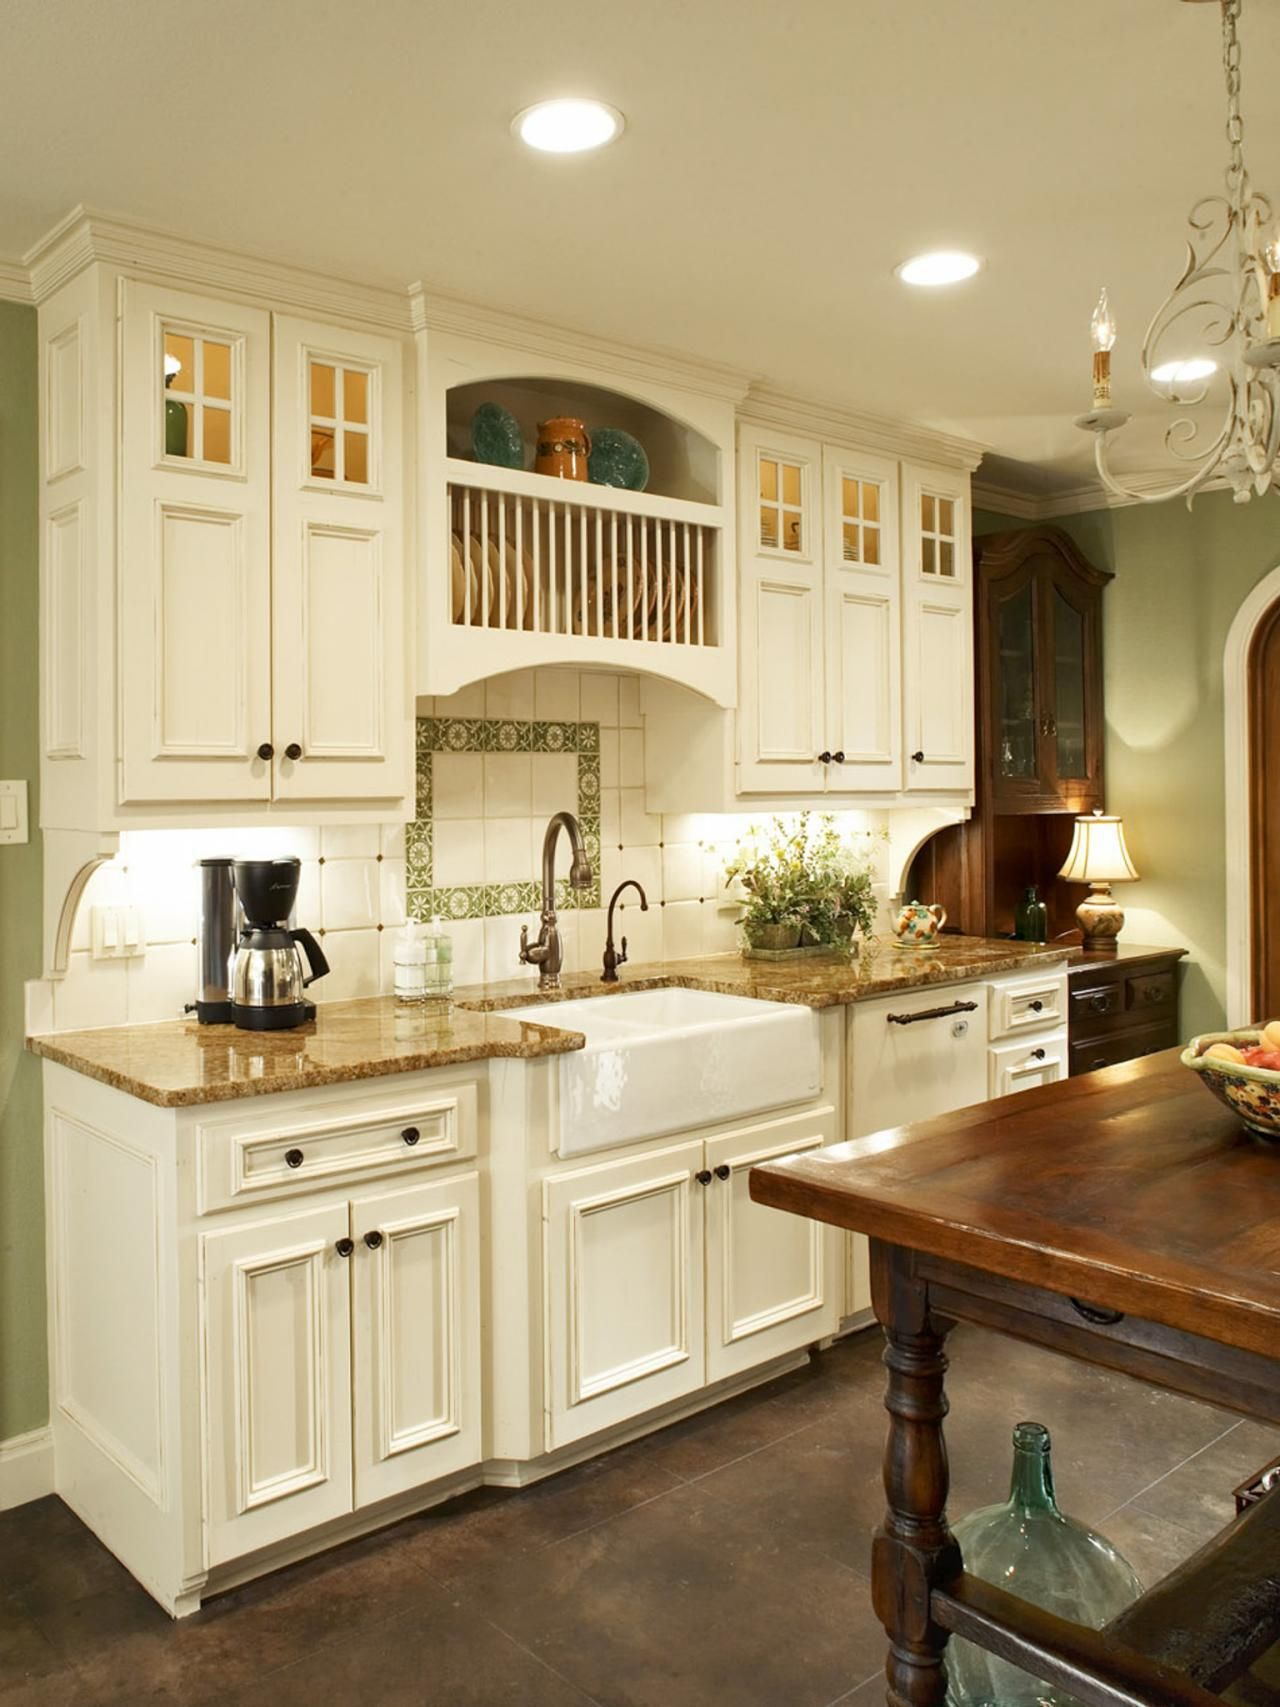 modern Country Kitchen Ideas decor cabinets | Cottage ...